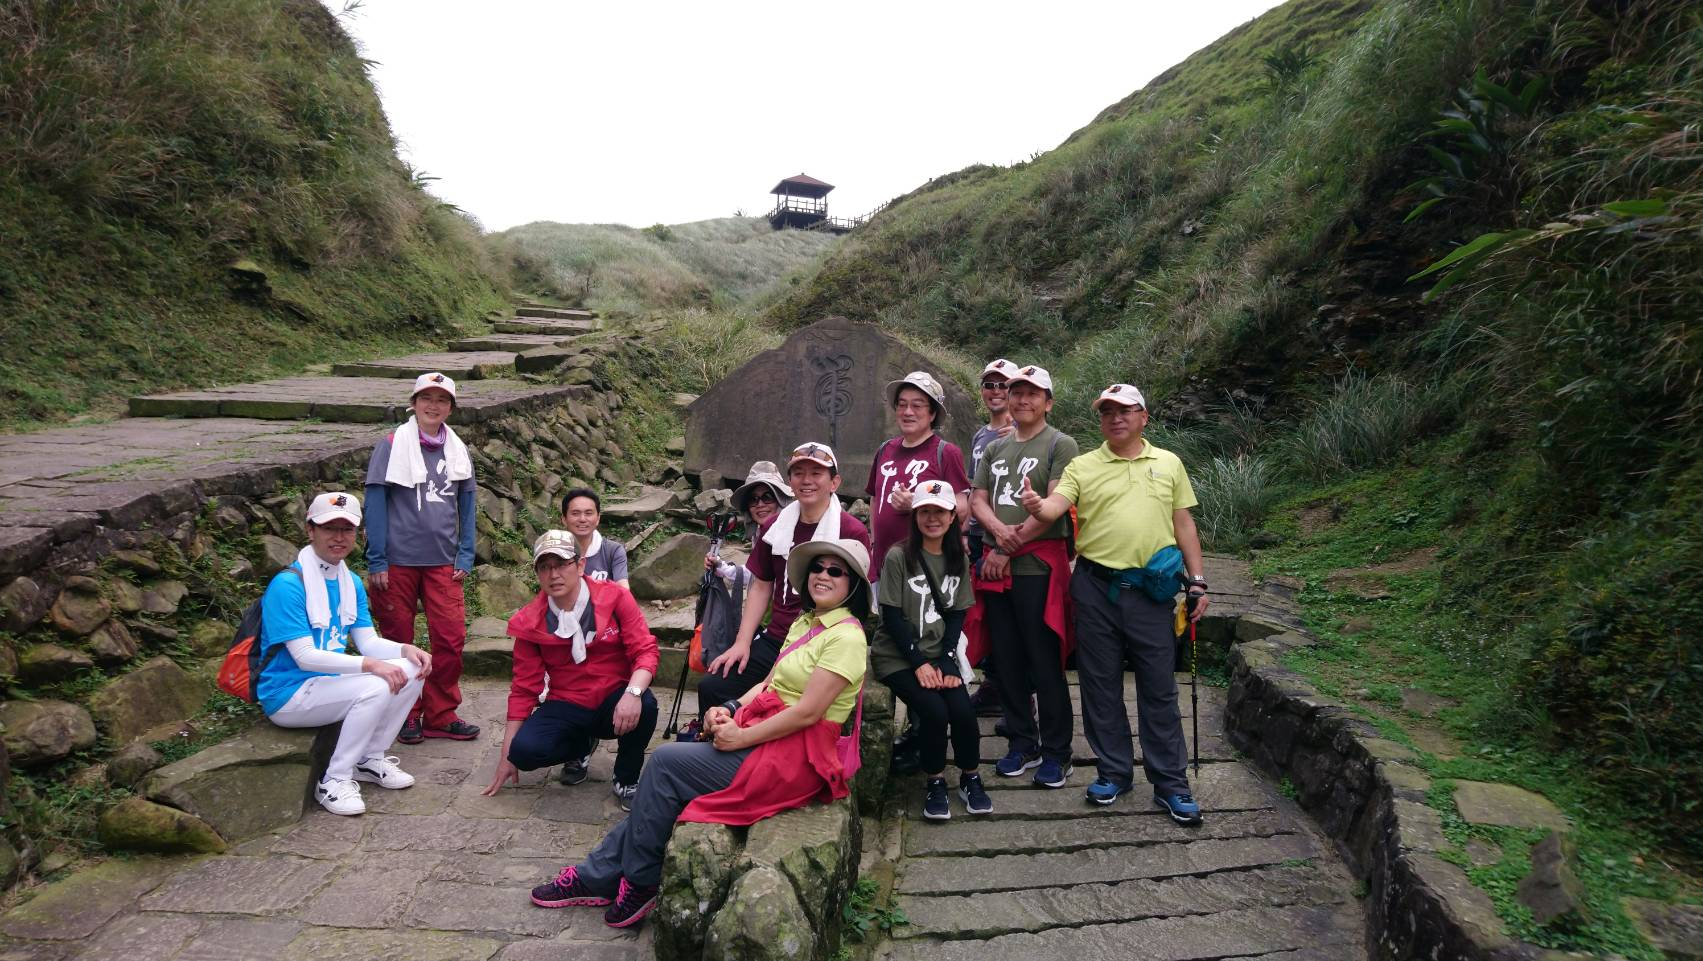 In promotion of hiking trail tourism in Taiwan and Japan, representatives of Miyagi in Japan visit Caoling Old Trail